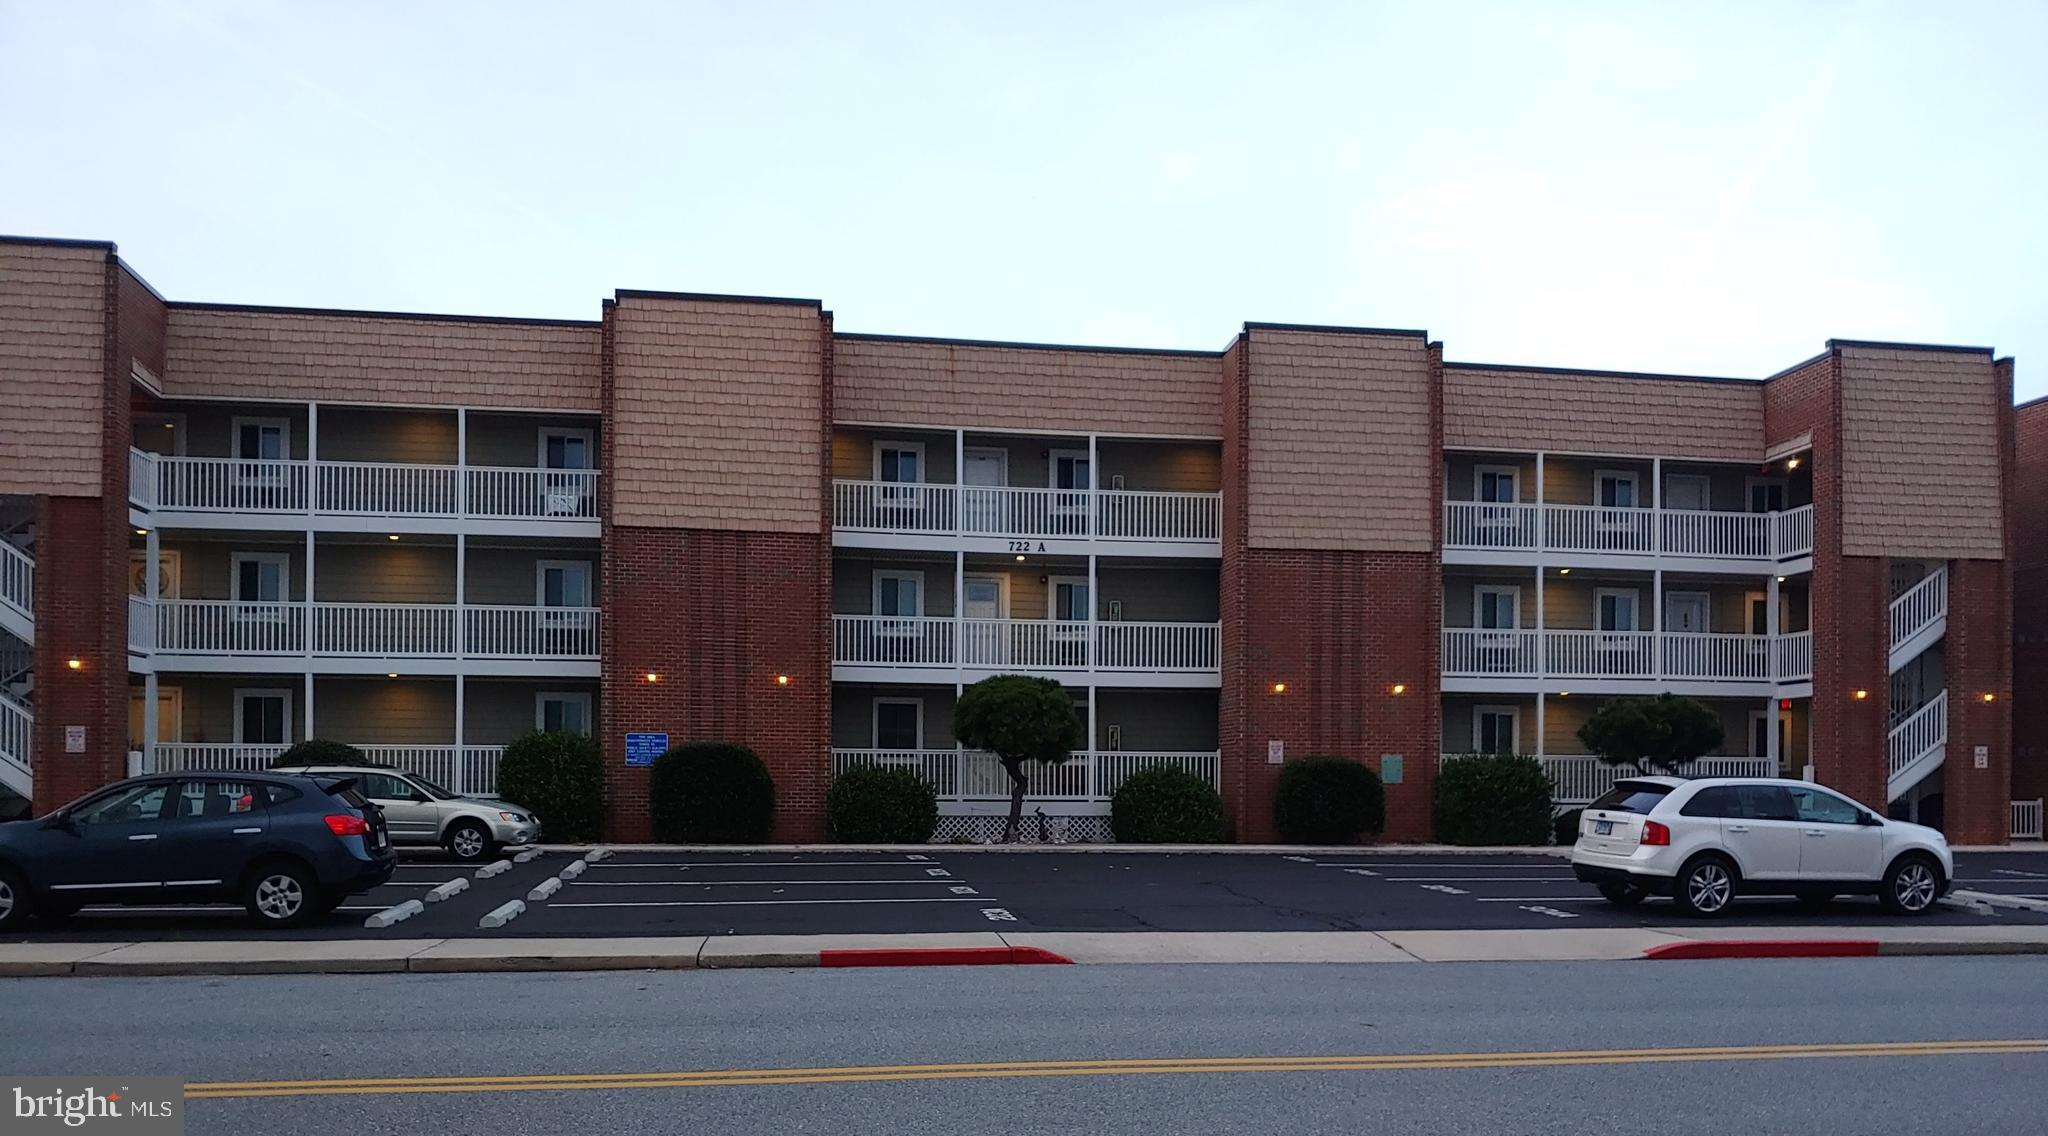 """Turnkey Beachy style condo in a small, 3-story Bldg. Seller's Personal Vac-Condo(never rented). Both Bathrooms Remodeled 2 Yrs ago/Brand new DW/Pella Sliding Glass Doors & 2 Windows W/inside Blinds replaced 3 yrs ago/4-Window AC units replaced 3-4 yrs ago/Carpet in LR & BR's 2 yrs old. Strong Condo Assoc & Prop Management Co. Many recent Bldg Replacements & Improvements (including Top-Off-Vinyl Siding, Storm Doors, Trex Railings & Steps in 2016. Pkg Lots repaved/2017. A & B Bldg's had new Roofs/2019, (W/new Industry Material-called """"TPO Roofing Membrane""""). New Bulkhead on Bldg B. This Condo is located in Bldg """"A"""" which is the closest of the 3 Bldgs to the Bayfront. Assigned Pkg Space per Unit Owner. Spacious Private Canan-side Balcony (access from the Liv Room & Mstr BR), Grassy-yard for grilling on warm beach nights."""